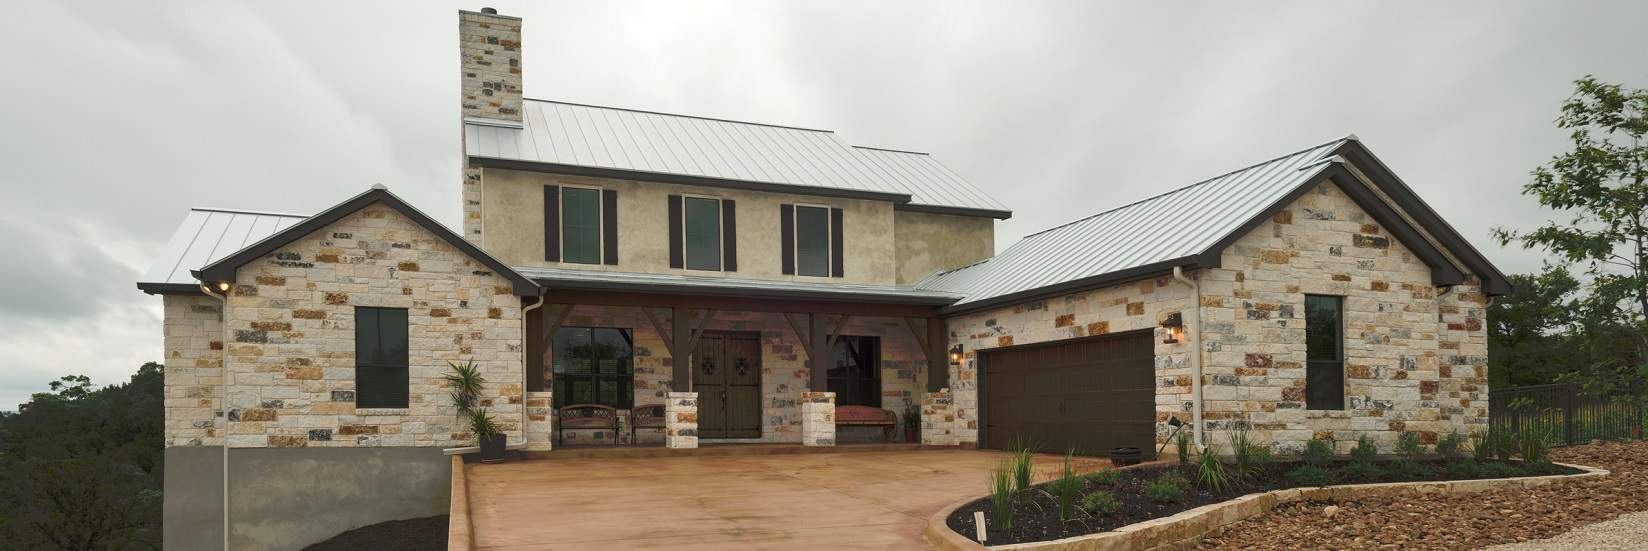 Custom home builder new braunfels san antonio hill country Custom luxury home design ideas